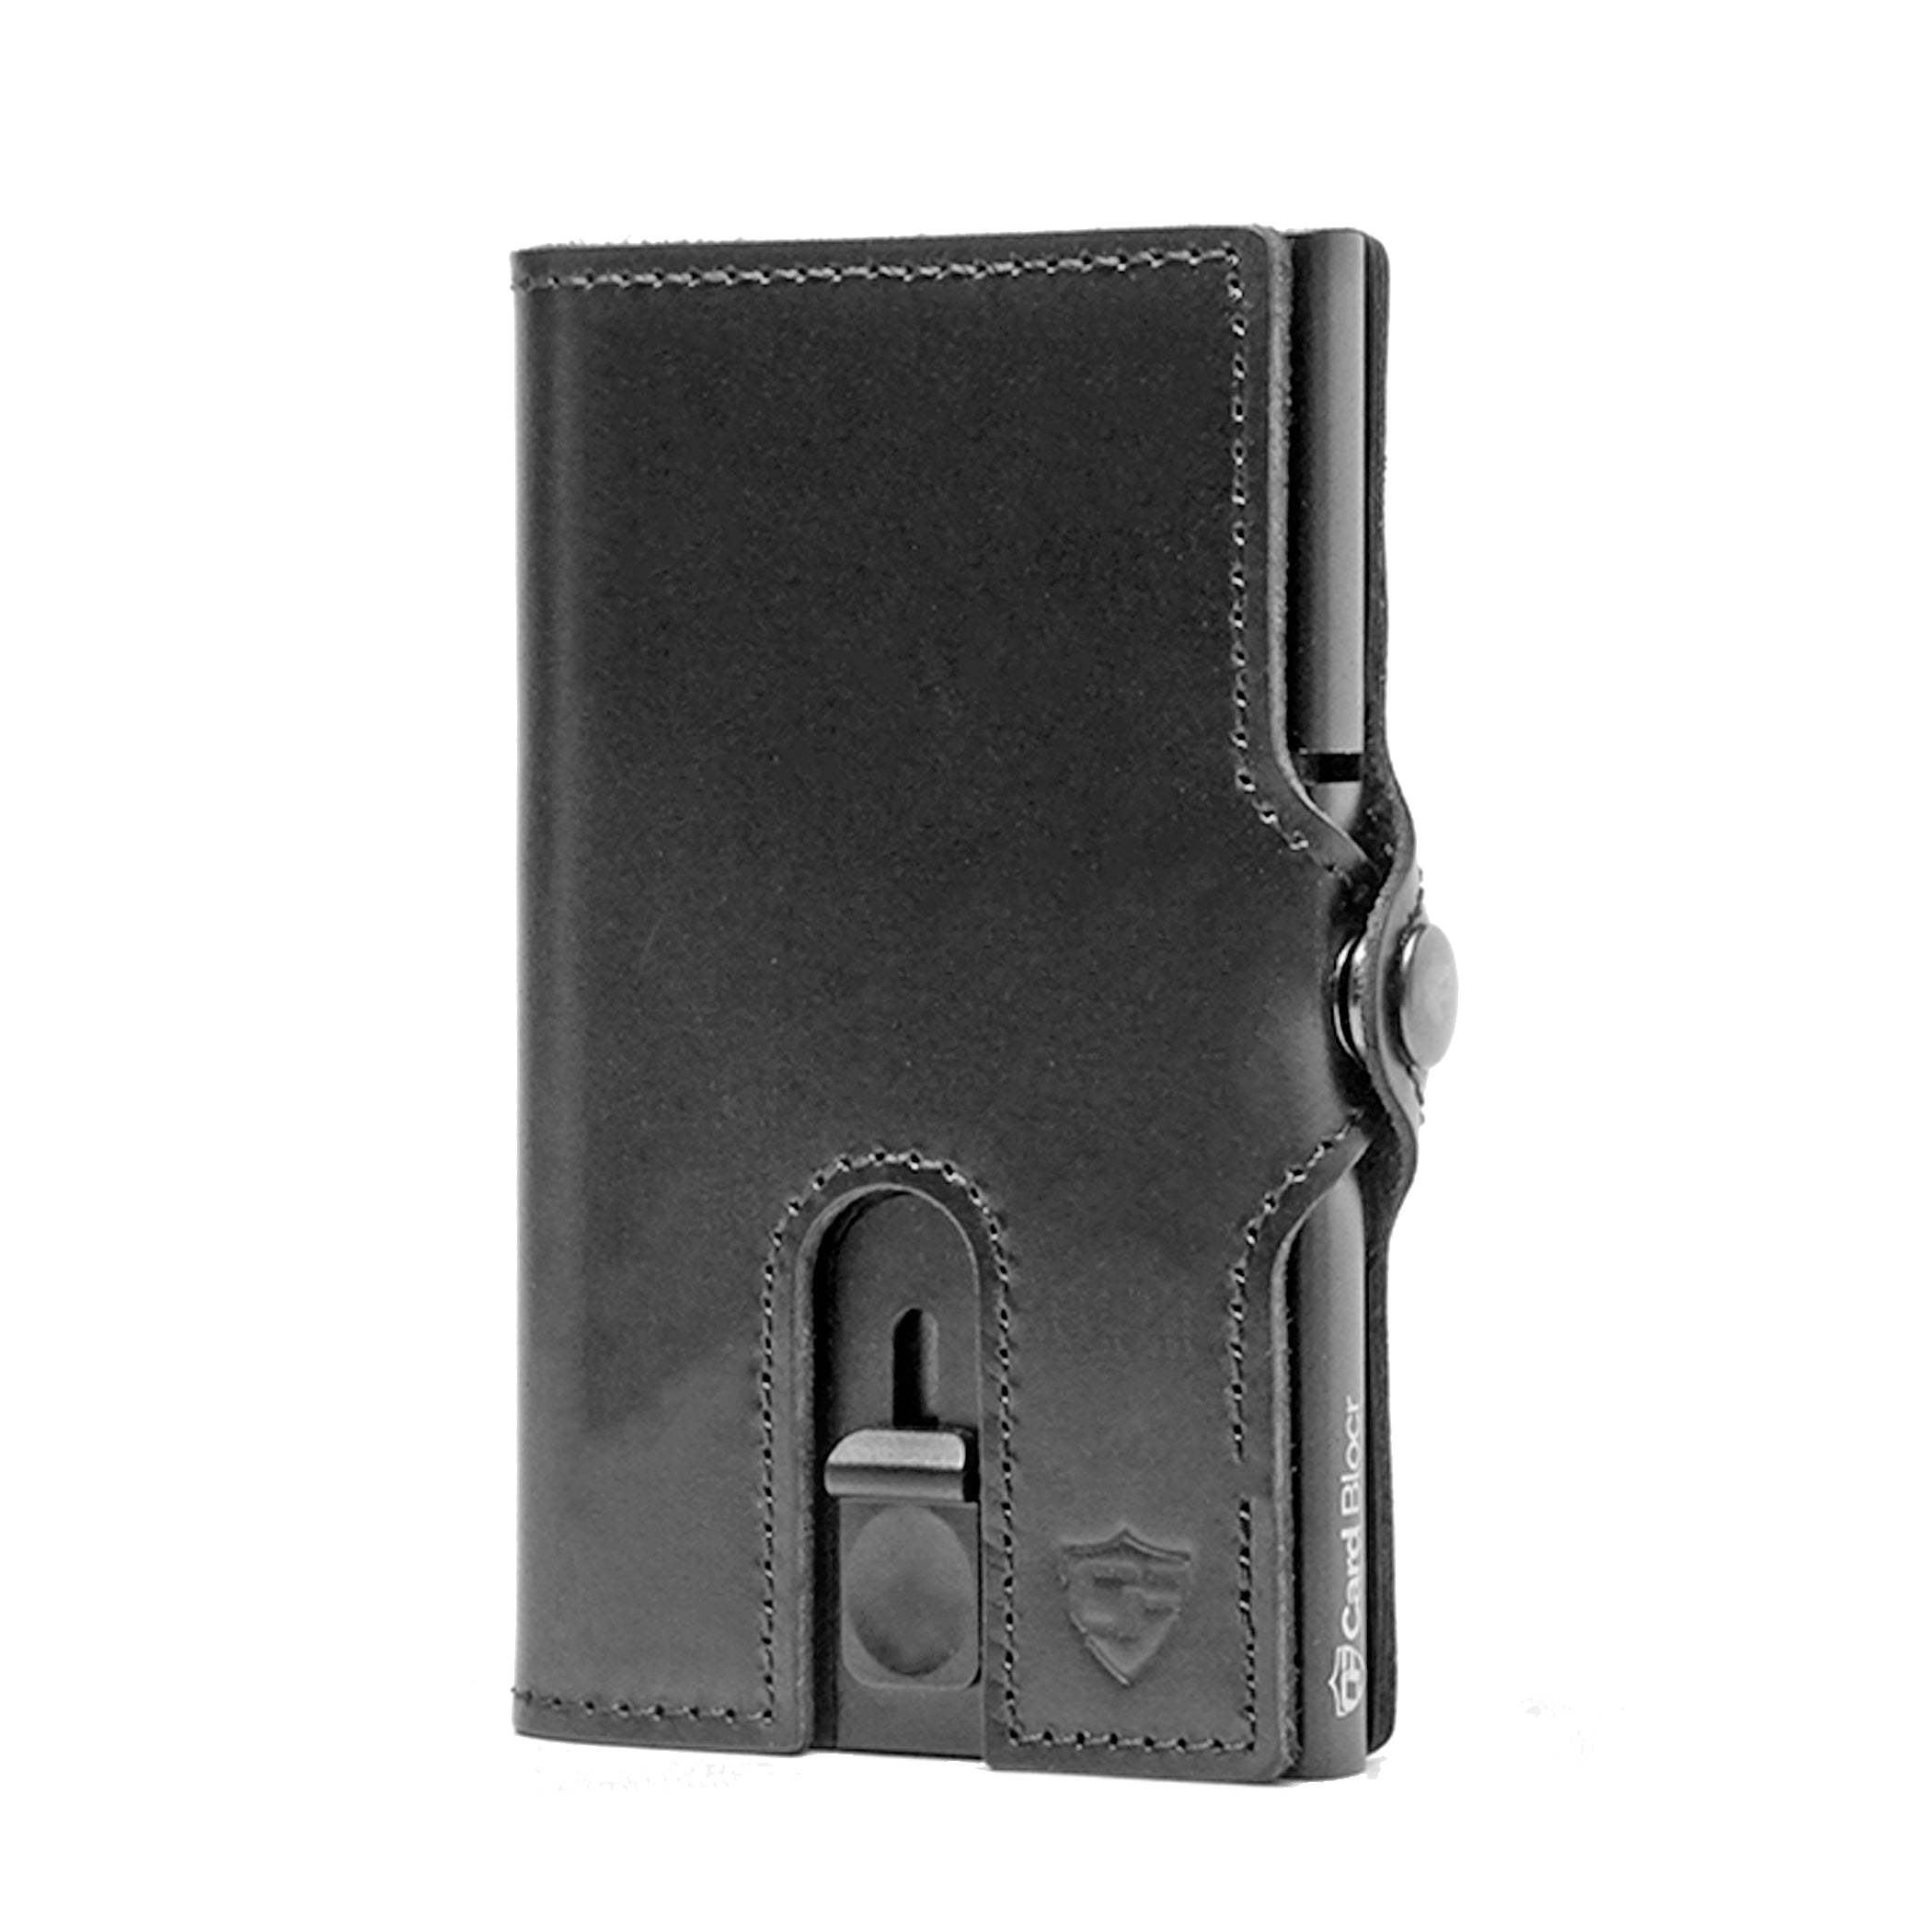 Card Blocr Credit Card Wallet in Black Leather | RFID Wallet Closed